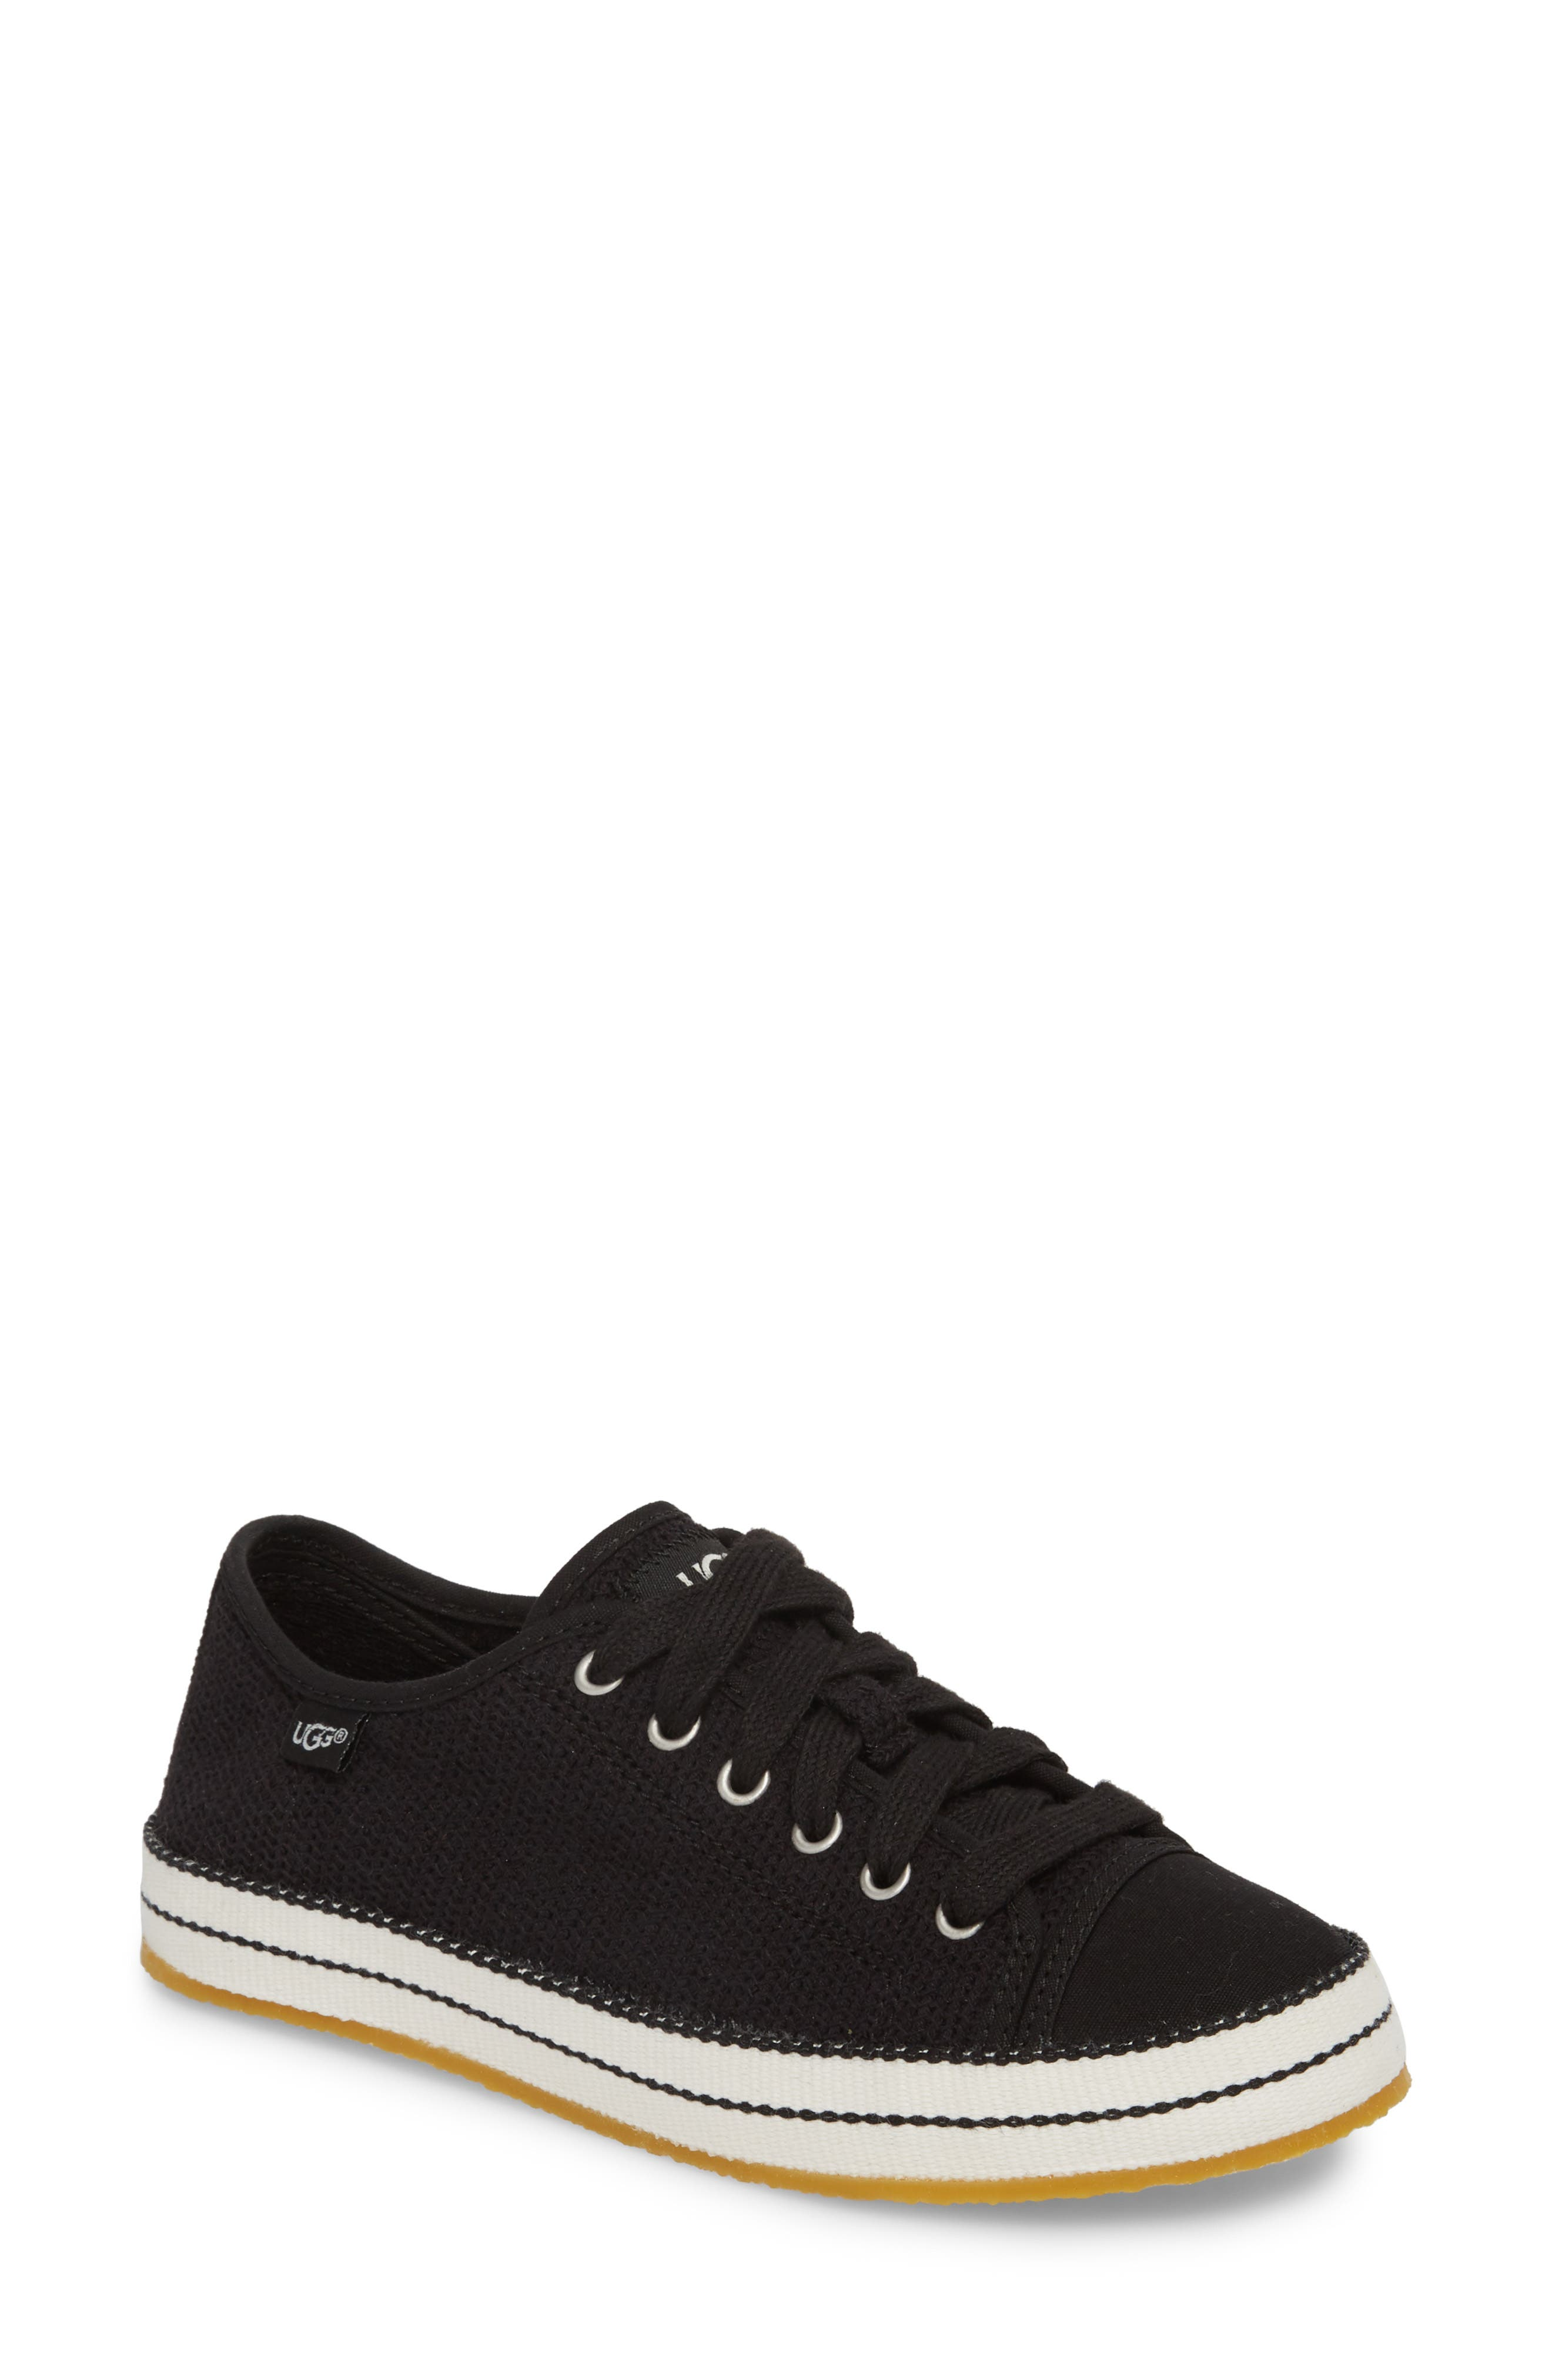 UGG<SUP>®</SUP> Claudi Sneaker, Main, color, BLACK